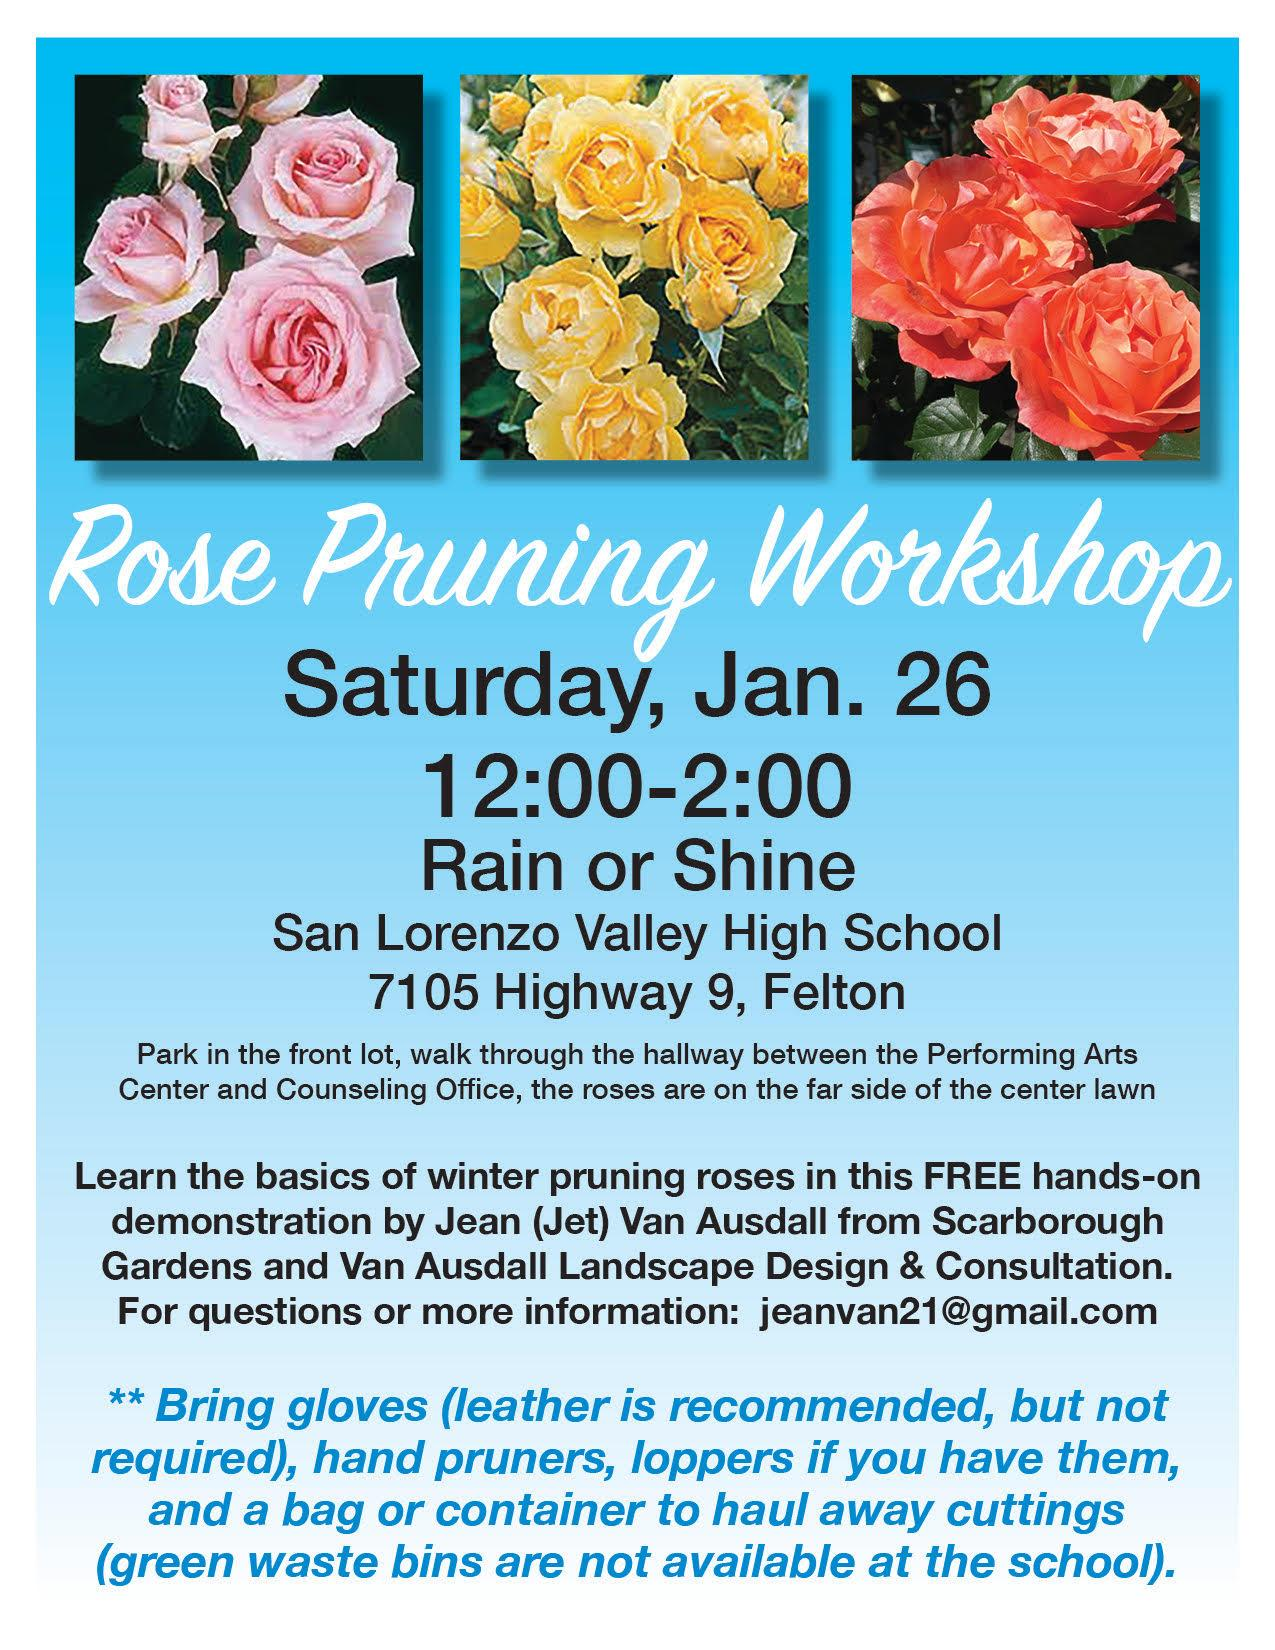 Rose Pruning Workshop at SLVHS 1-26